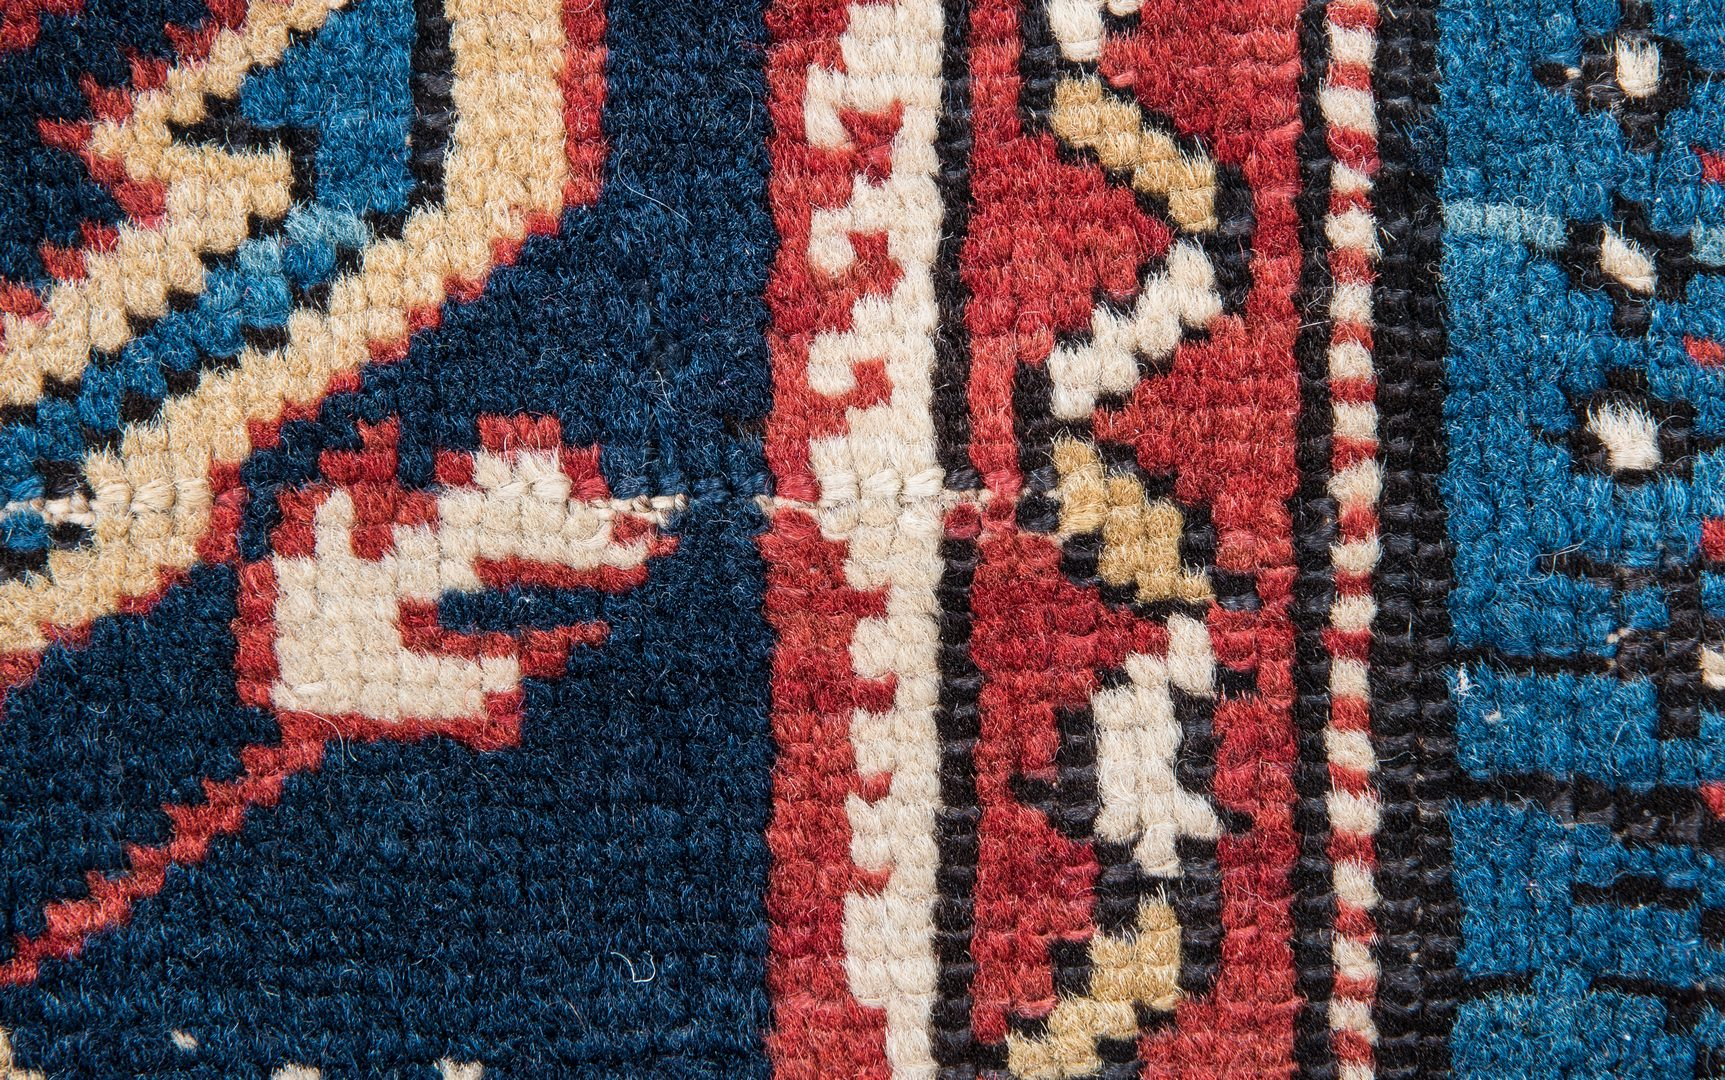 Lot 318: Antique Bidjov rug, Northeast Caucasus